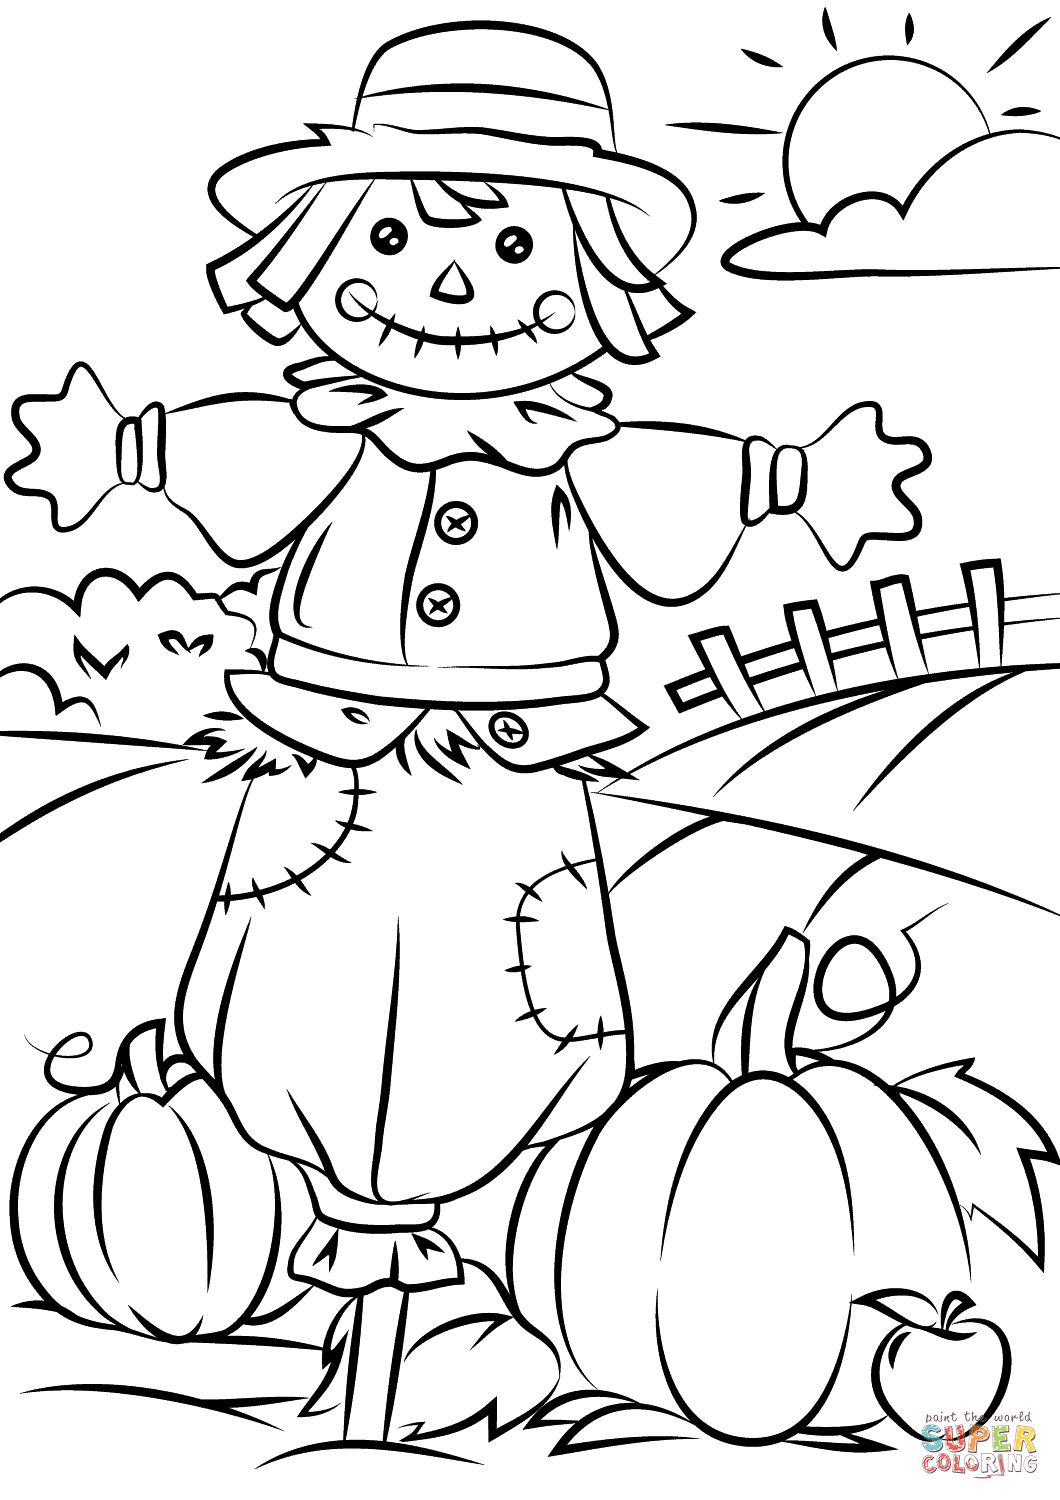 25+ Pretty Image of Fall Coloring Page